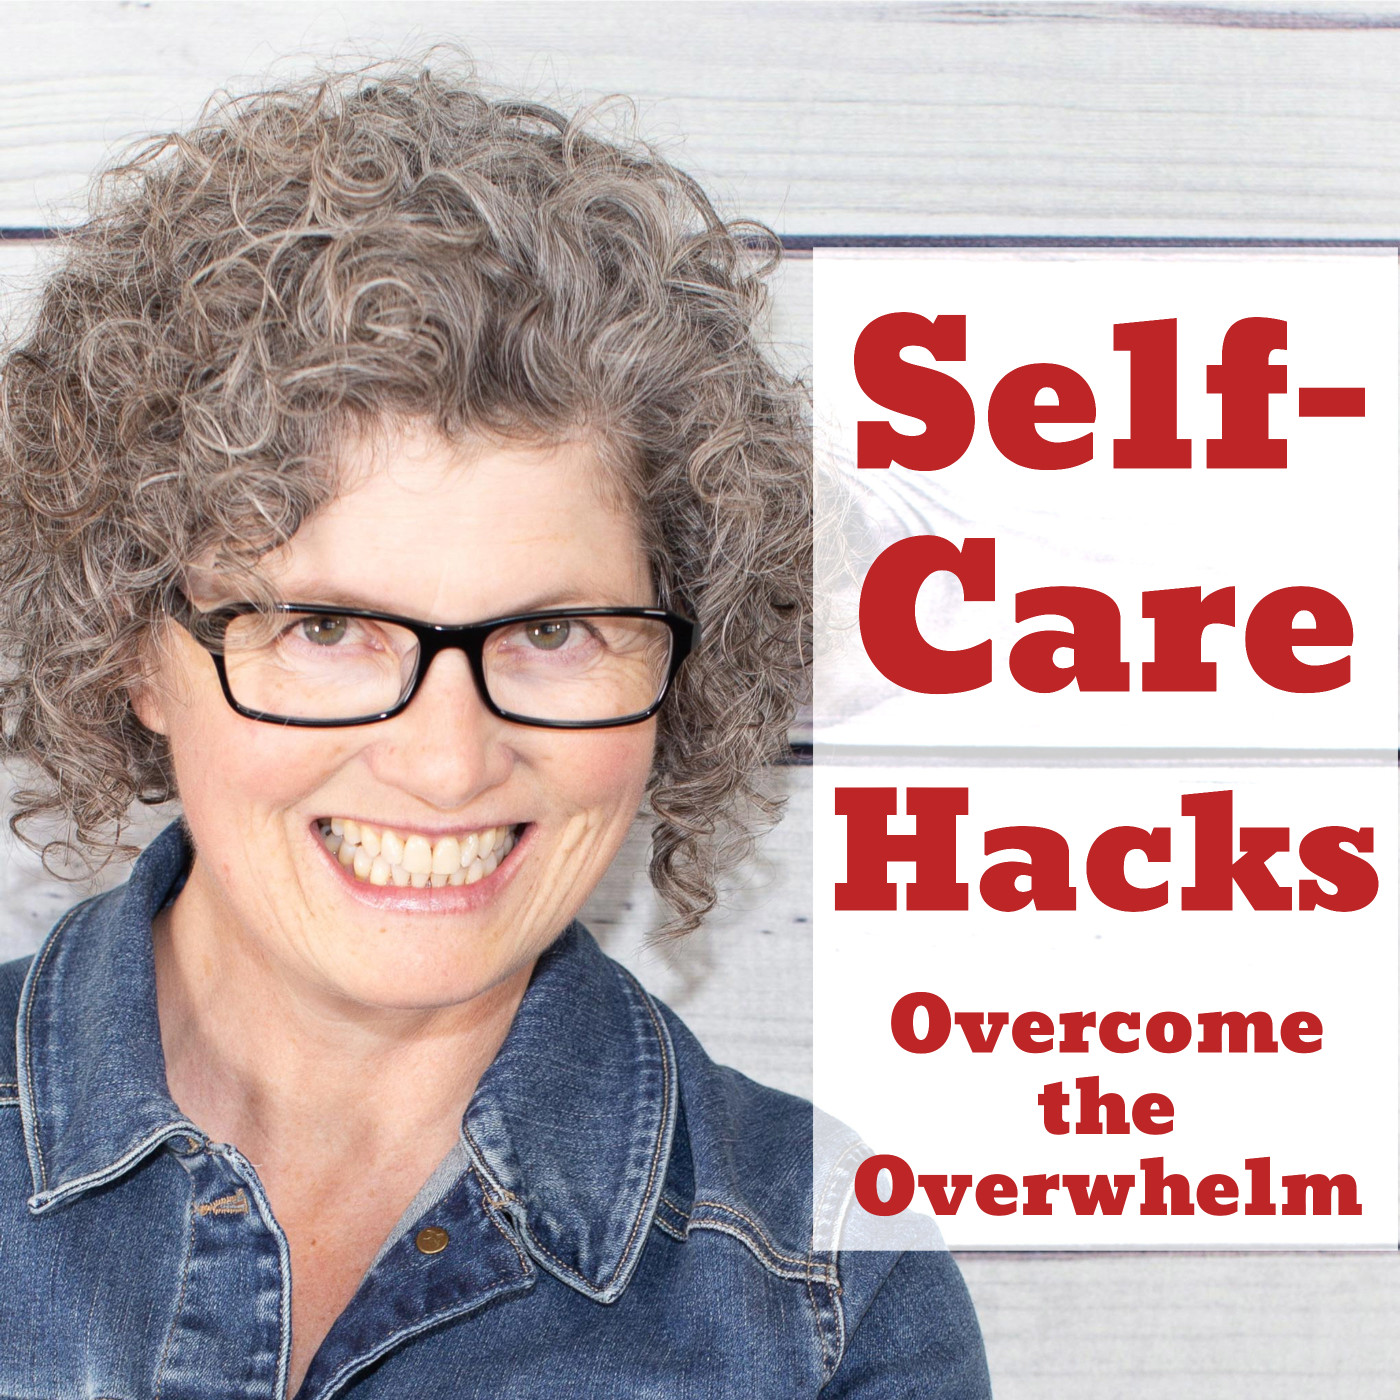 Self-Care Hacks